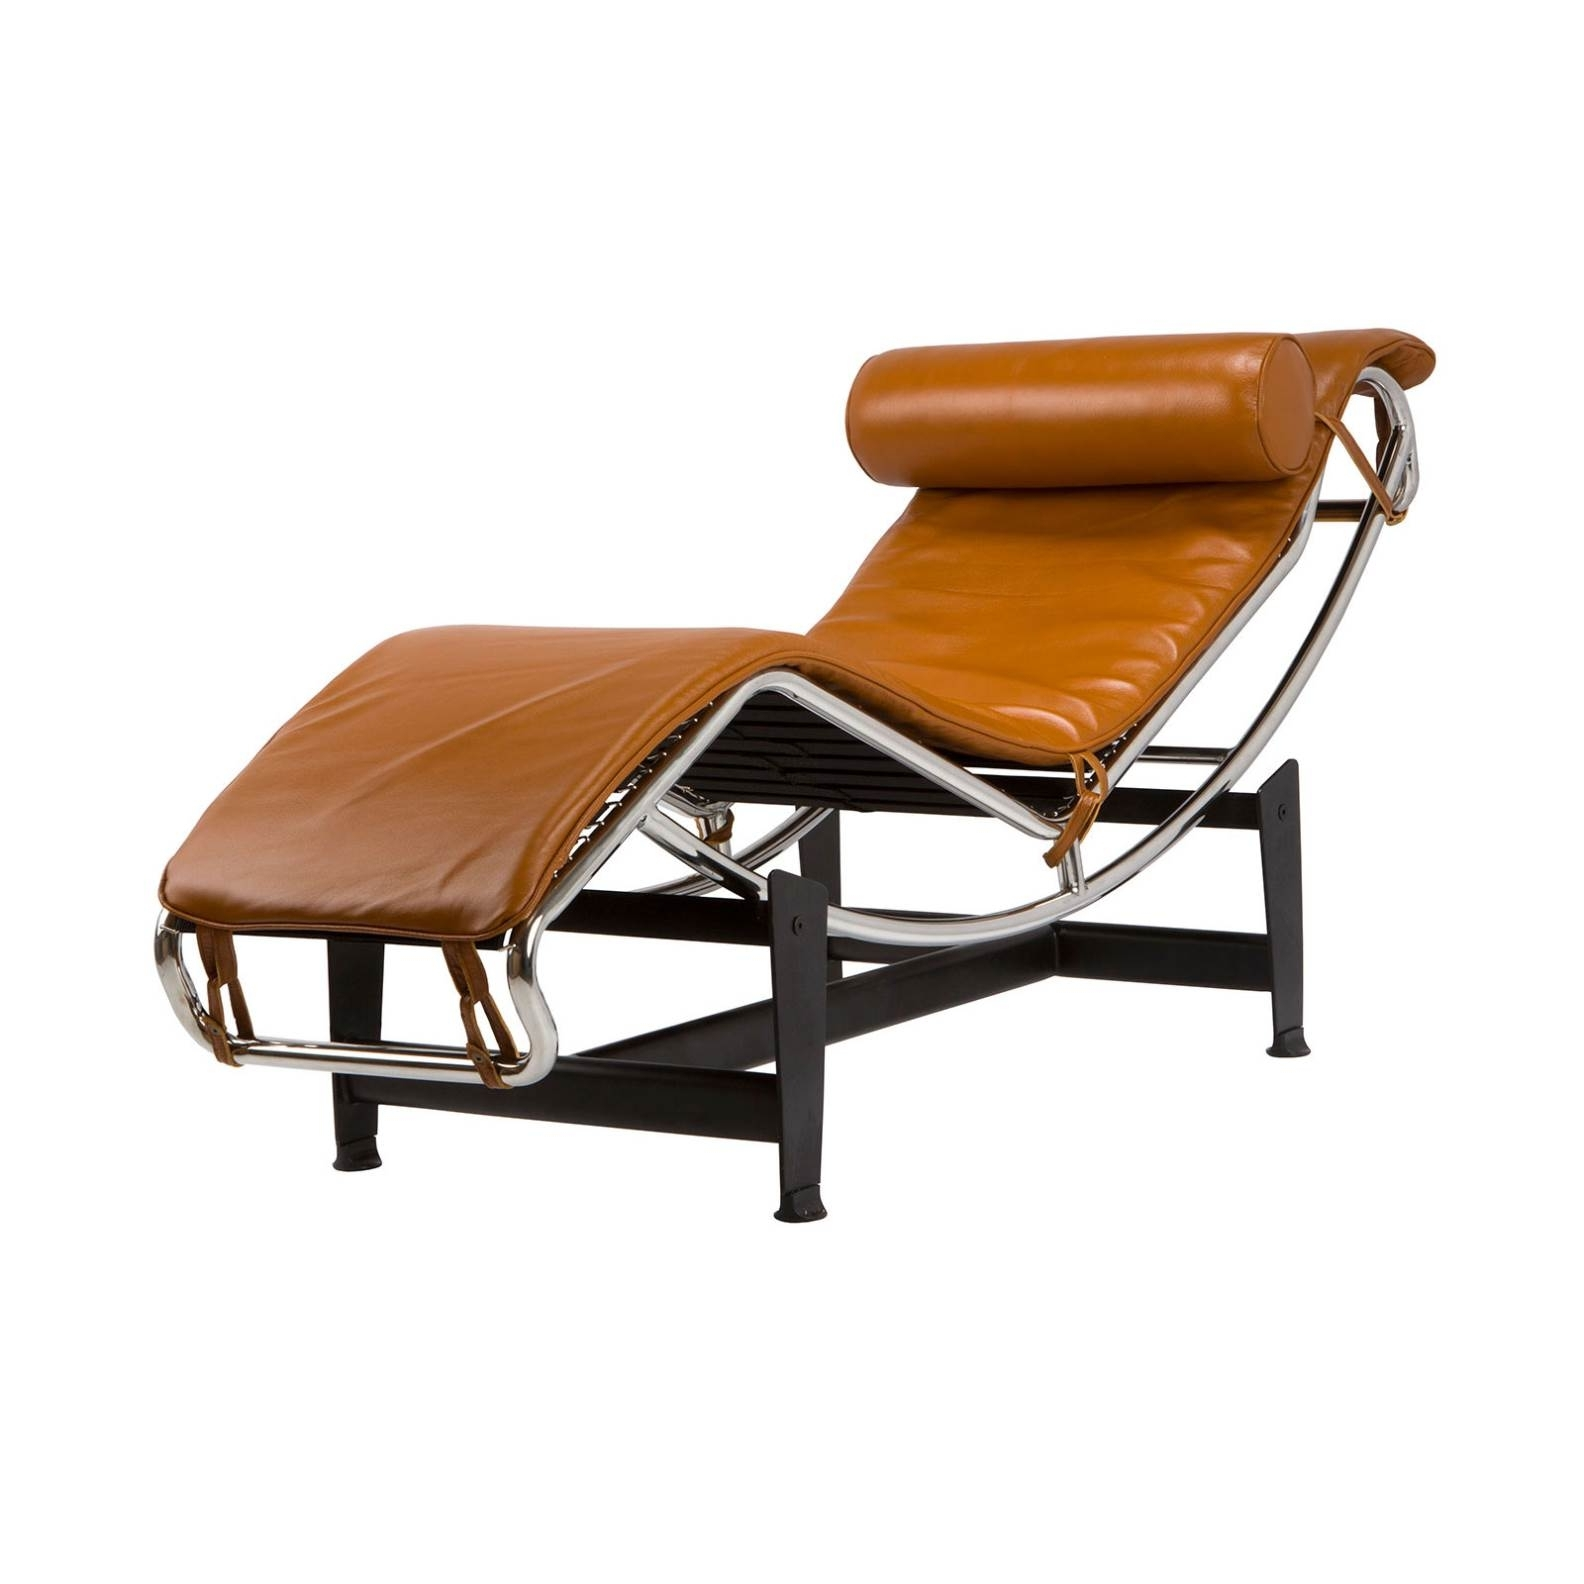 Most Recently Released Chaise Lounge Chairs Under $100 Pertaining To Patio Chaise Lounge Chairs Under $ (View 11 of 15)